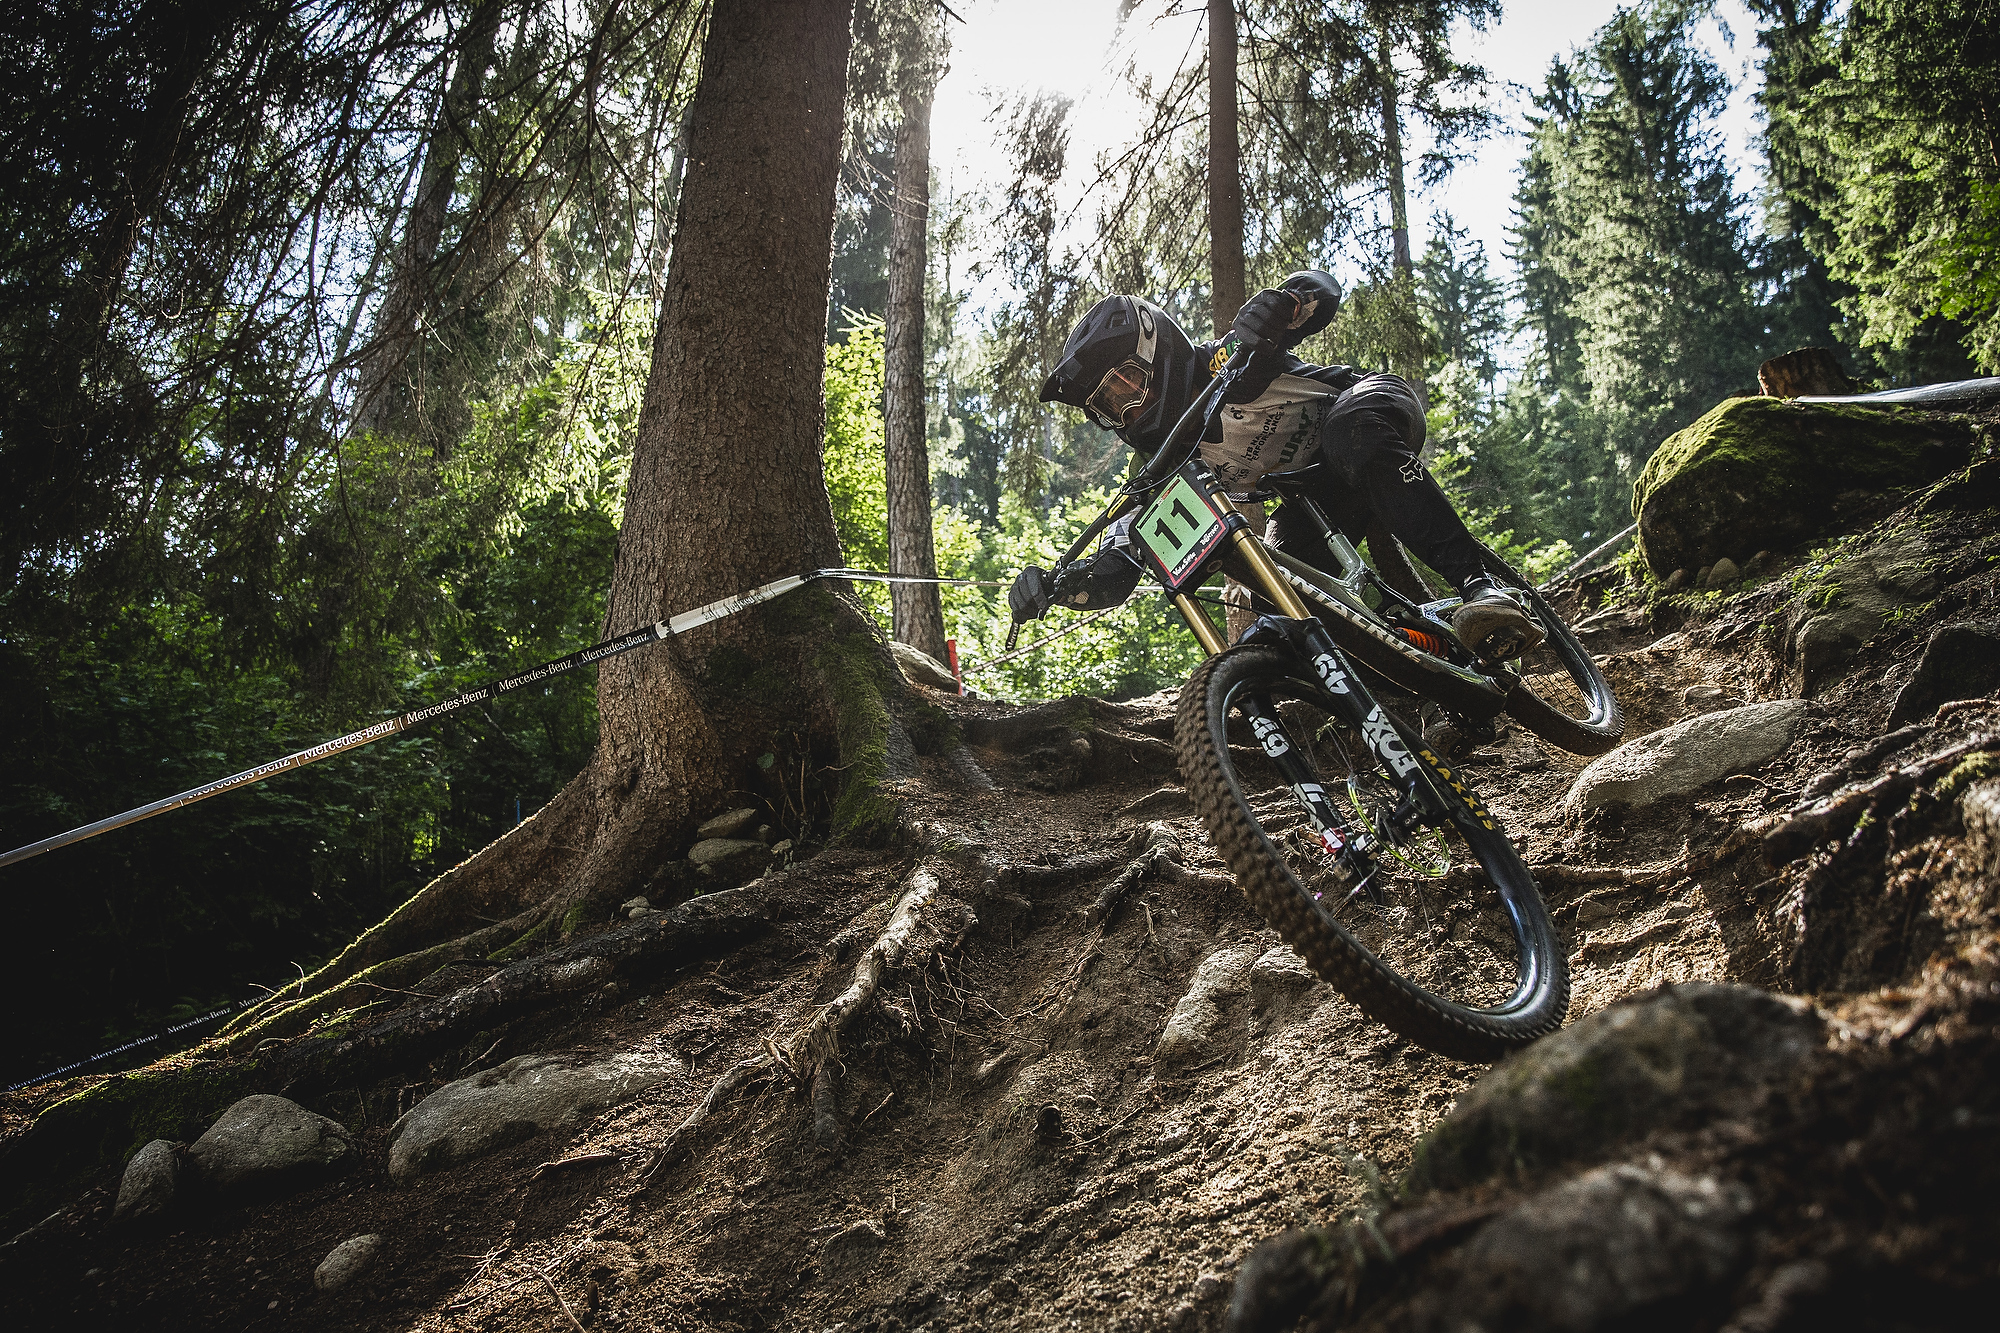 Tuhoto blazing to victory on the extremely raw Val di Sole World Cup course PC Sven Martin